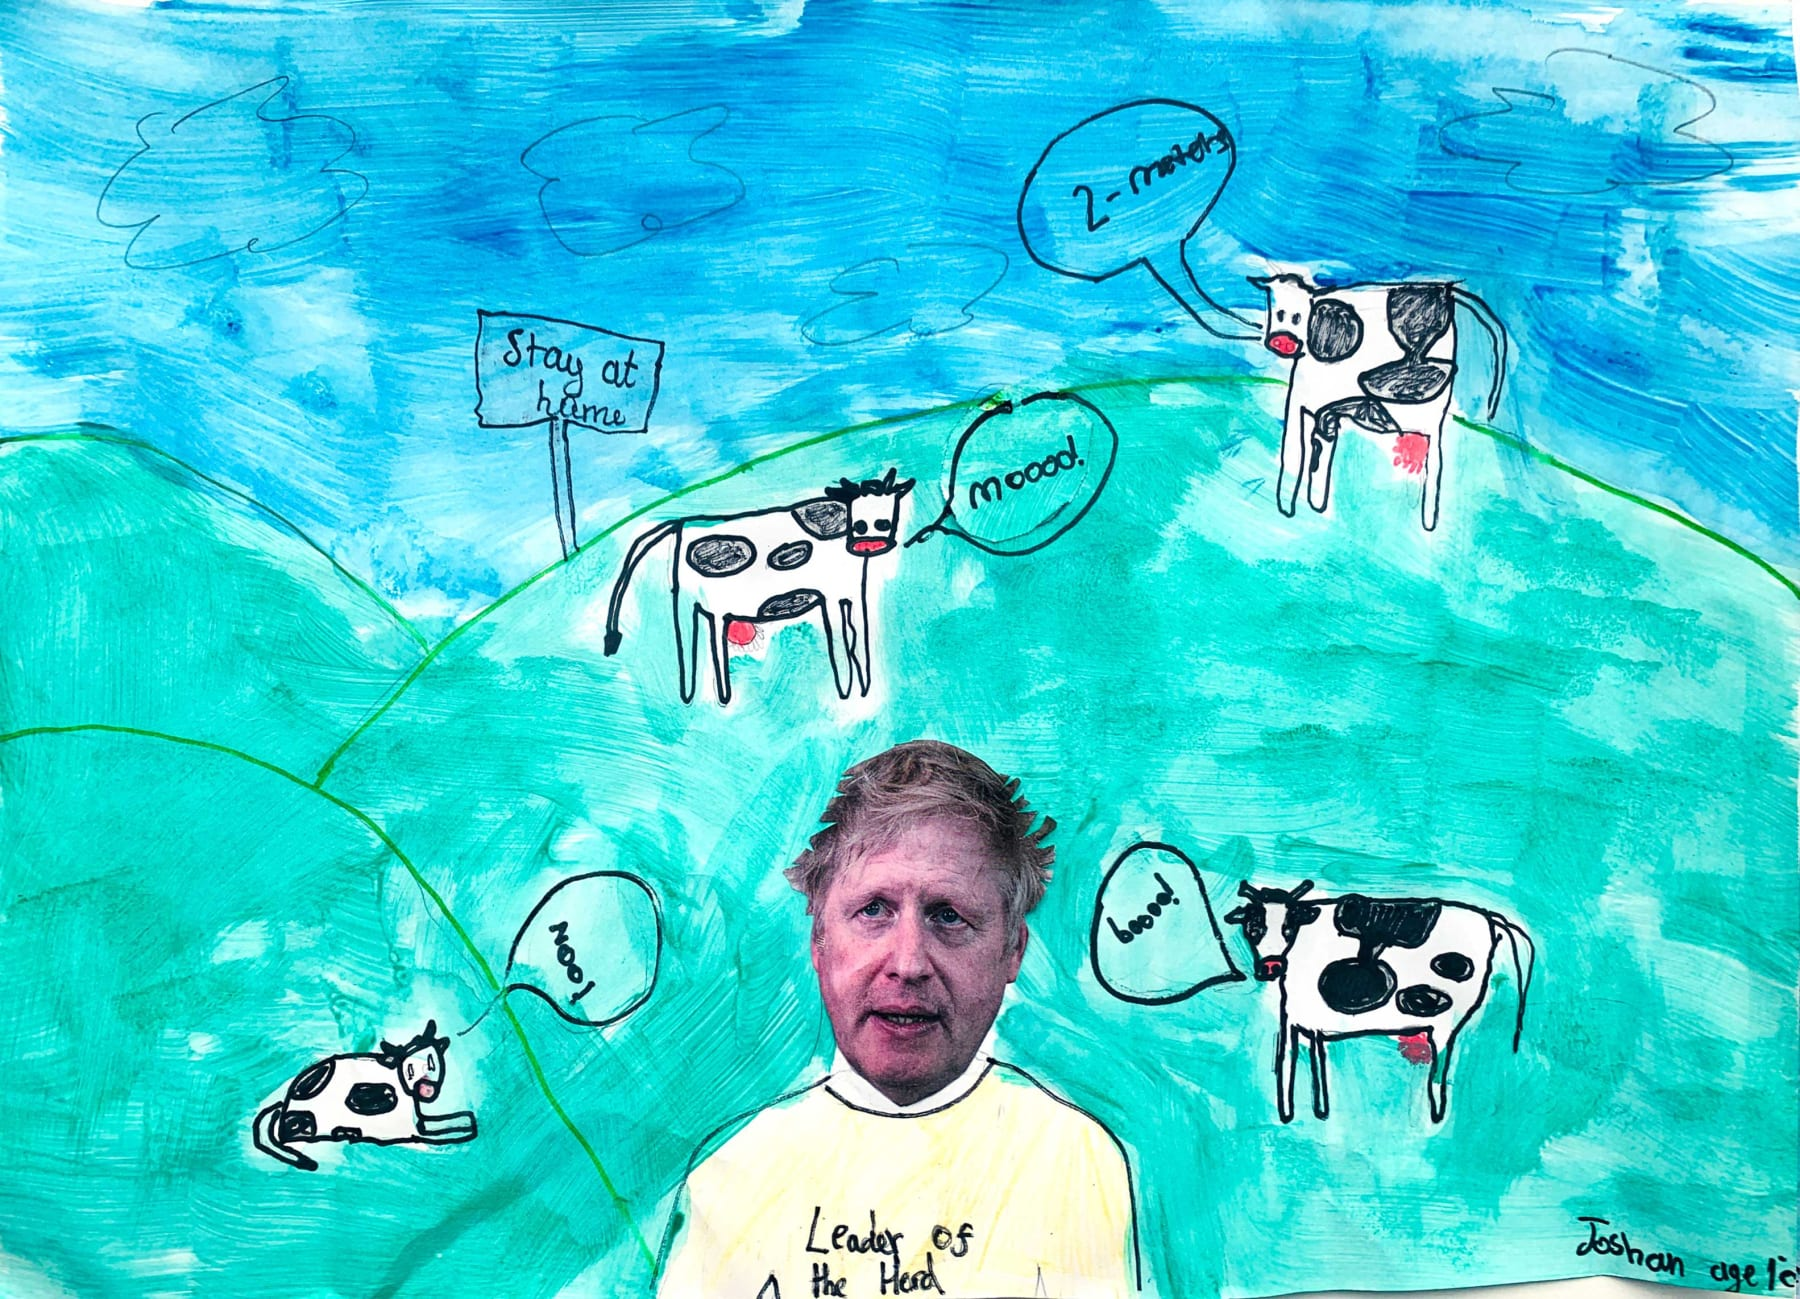 Joshan Di Paolo, Age 10, Leader Of The Herd